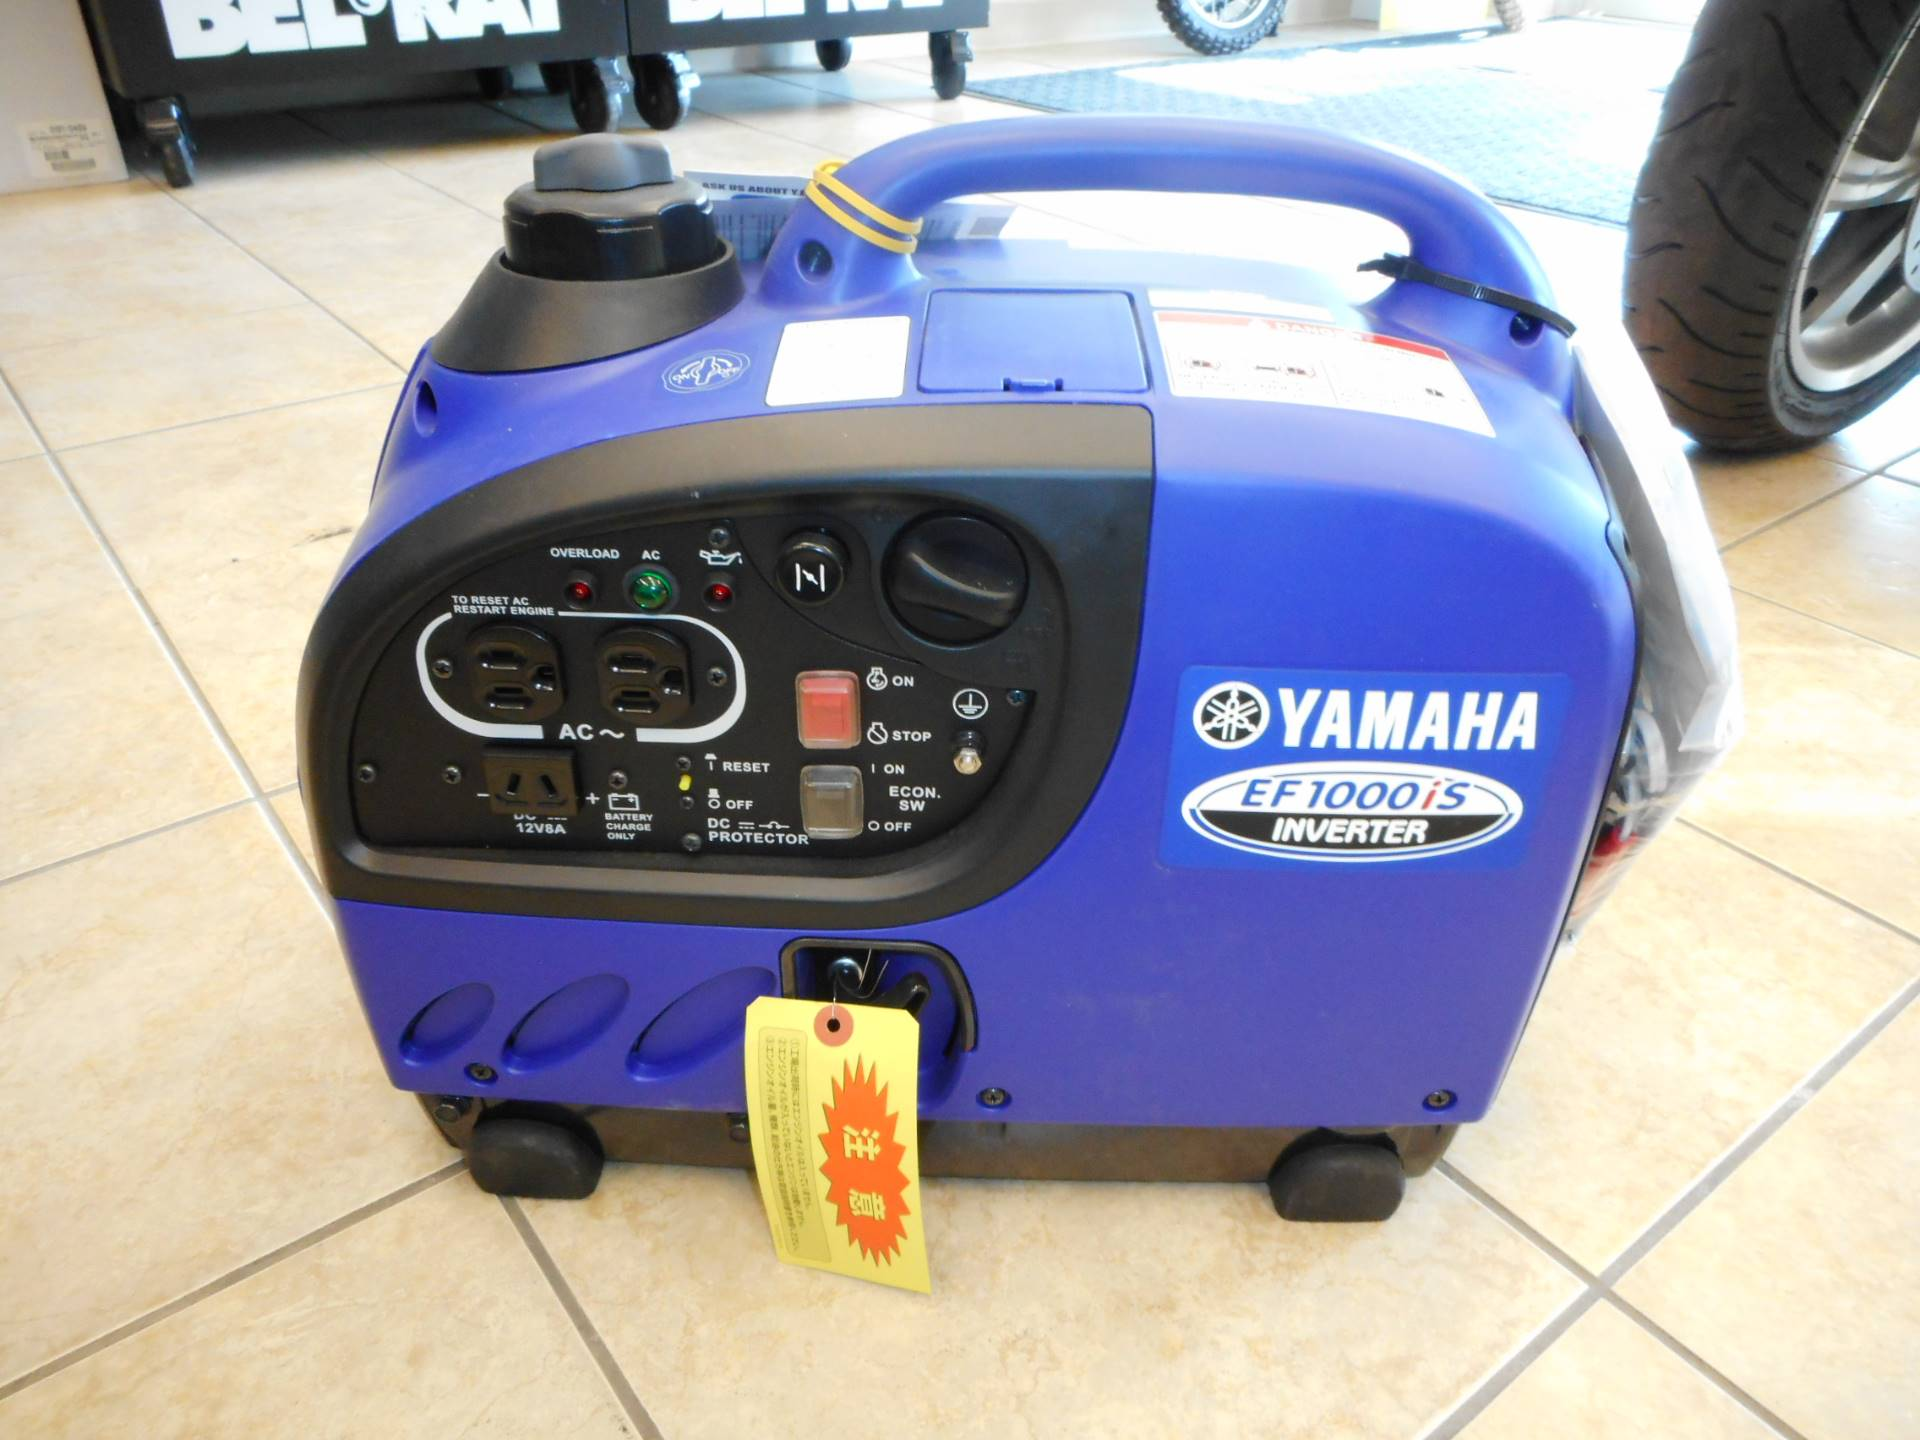 Model details for Yamaha generator ef1000is